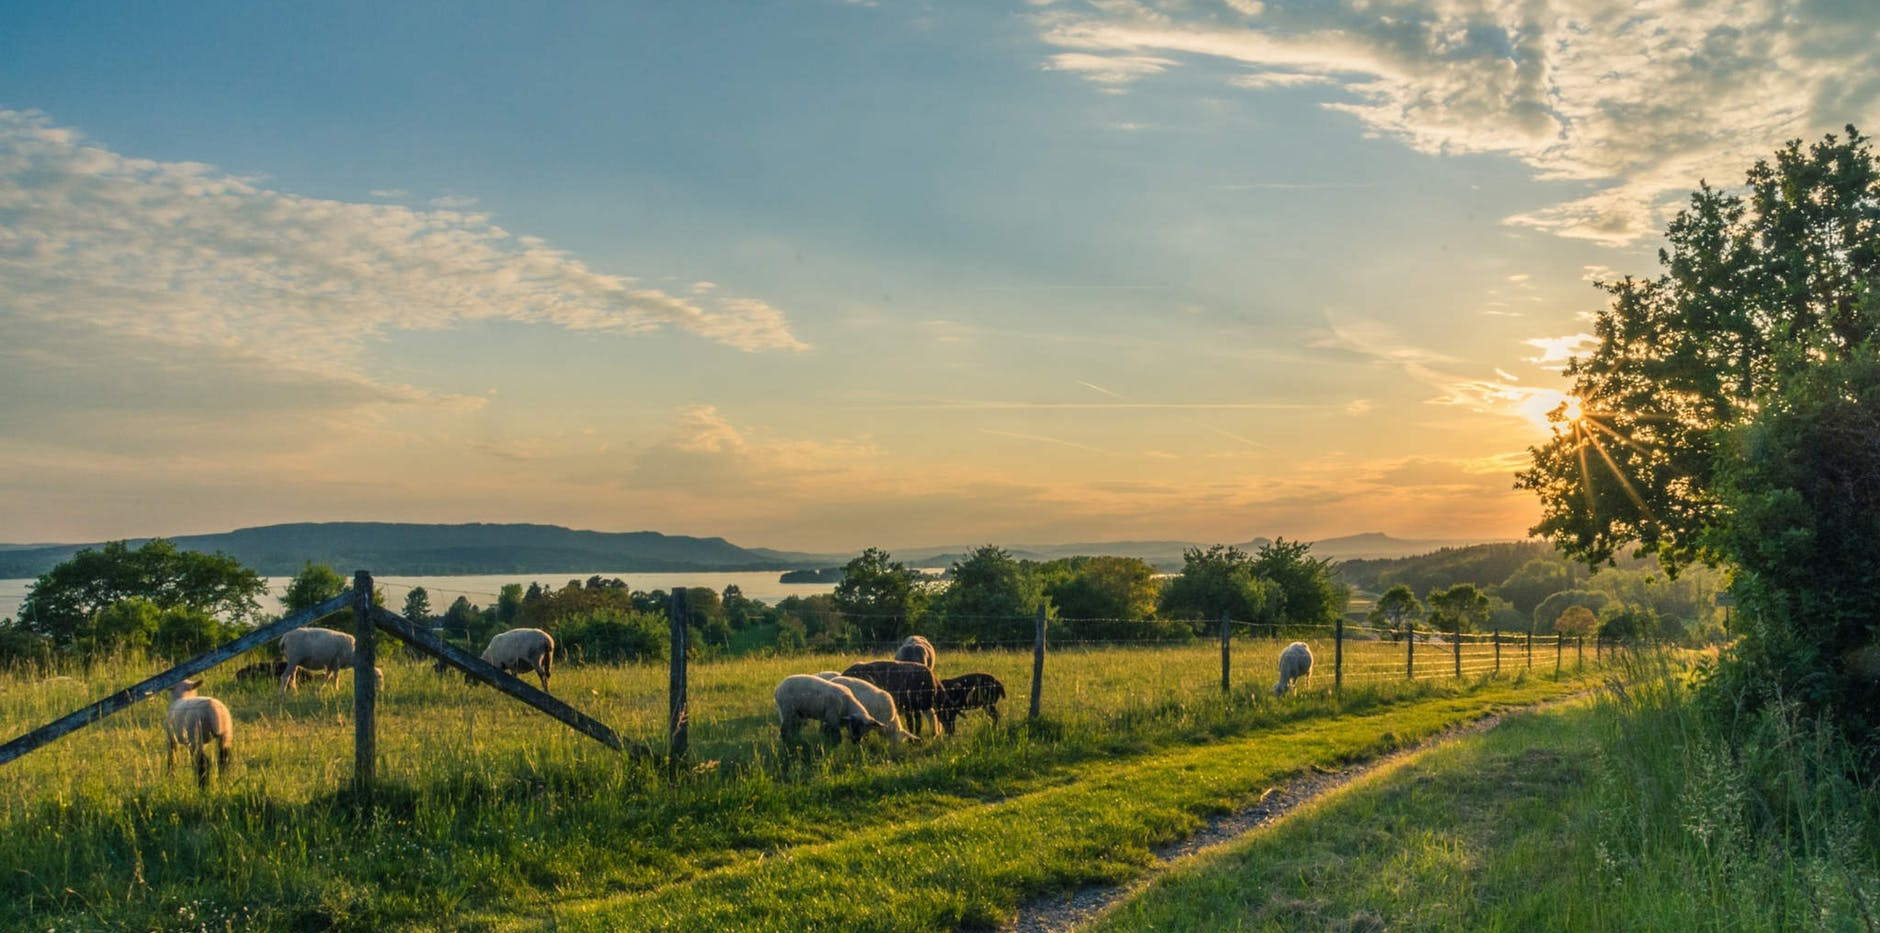 lake-constance-sheep-pasture-sheep-blue-